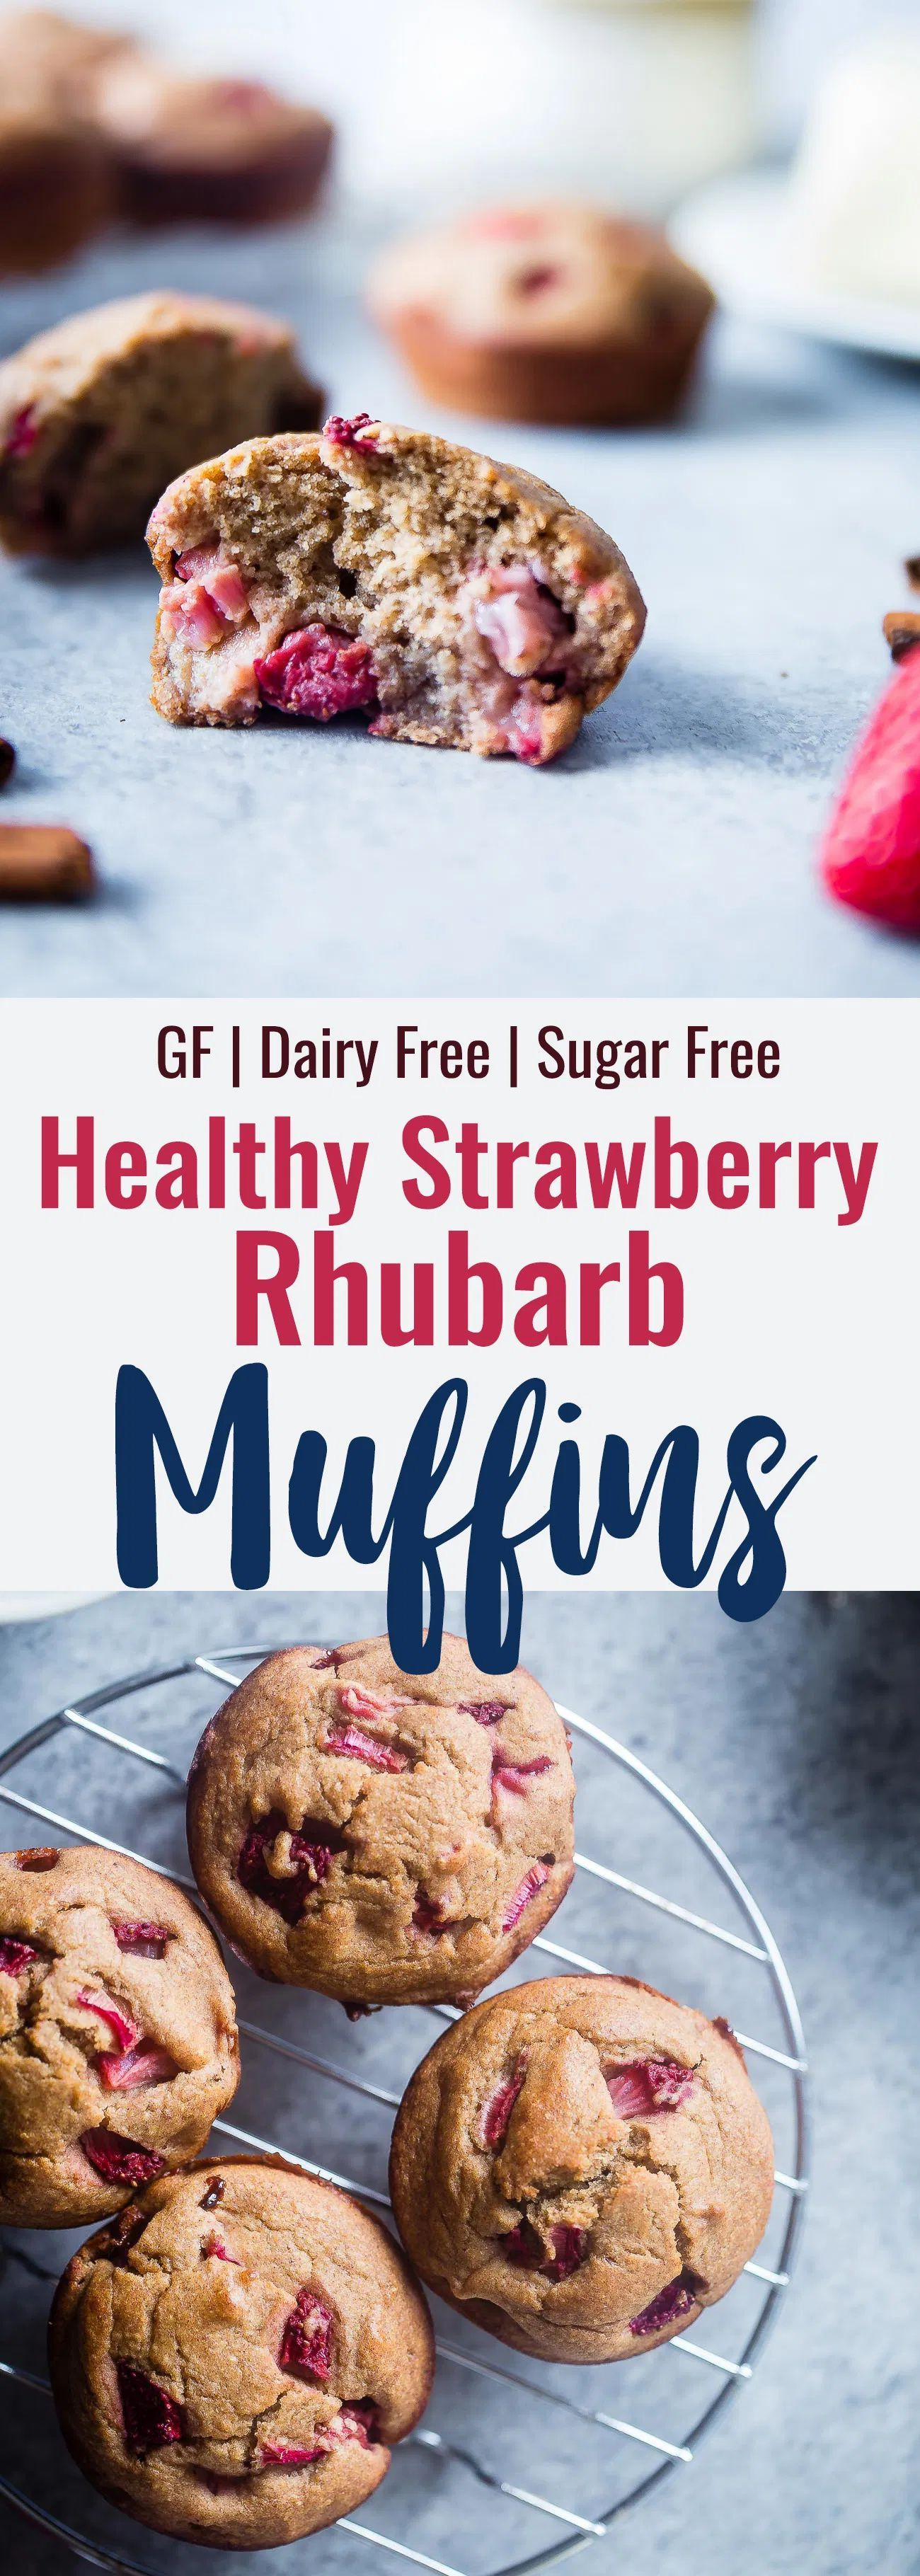 Strawberry Rhubarb Oatmeal Muffins In 2020 Rhubarb Recipes Best Gluten Free Recipes Rhubarb Oatmeal Muffins